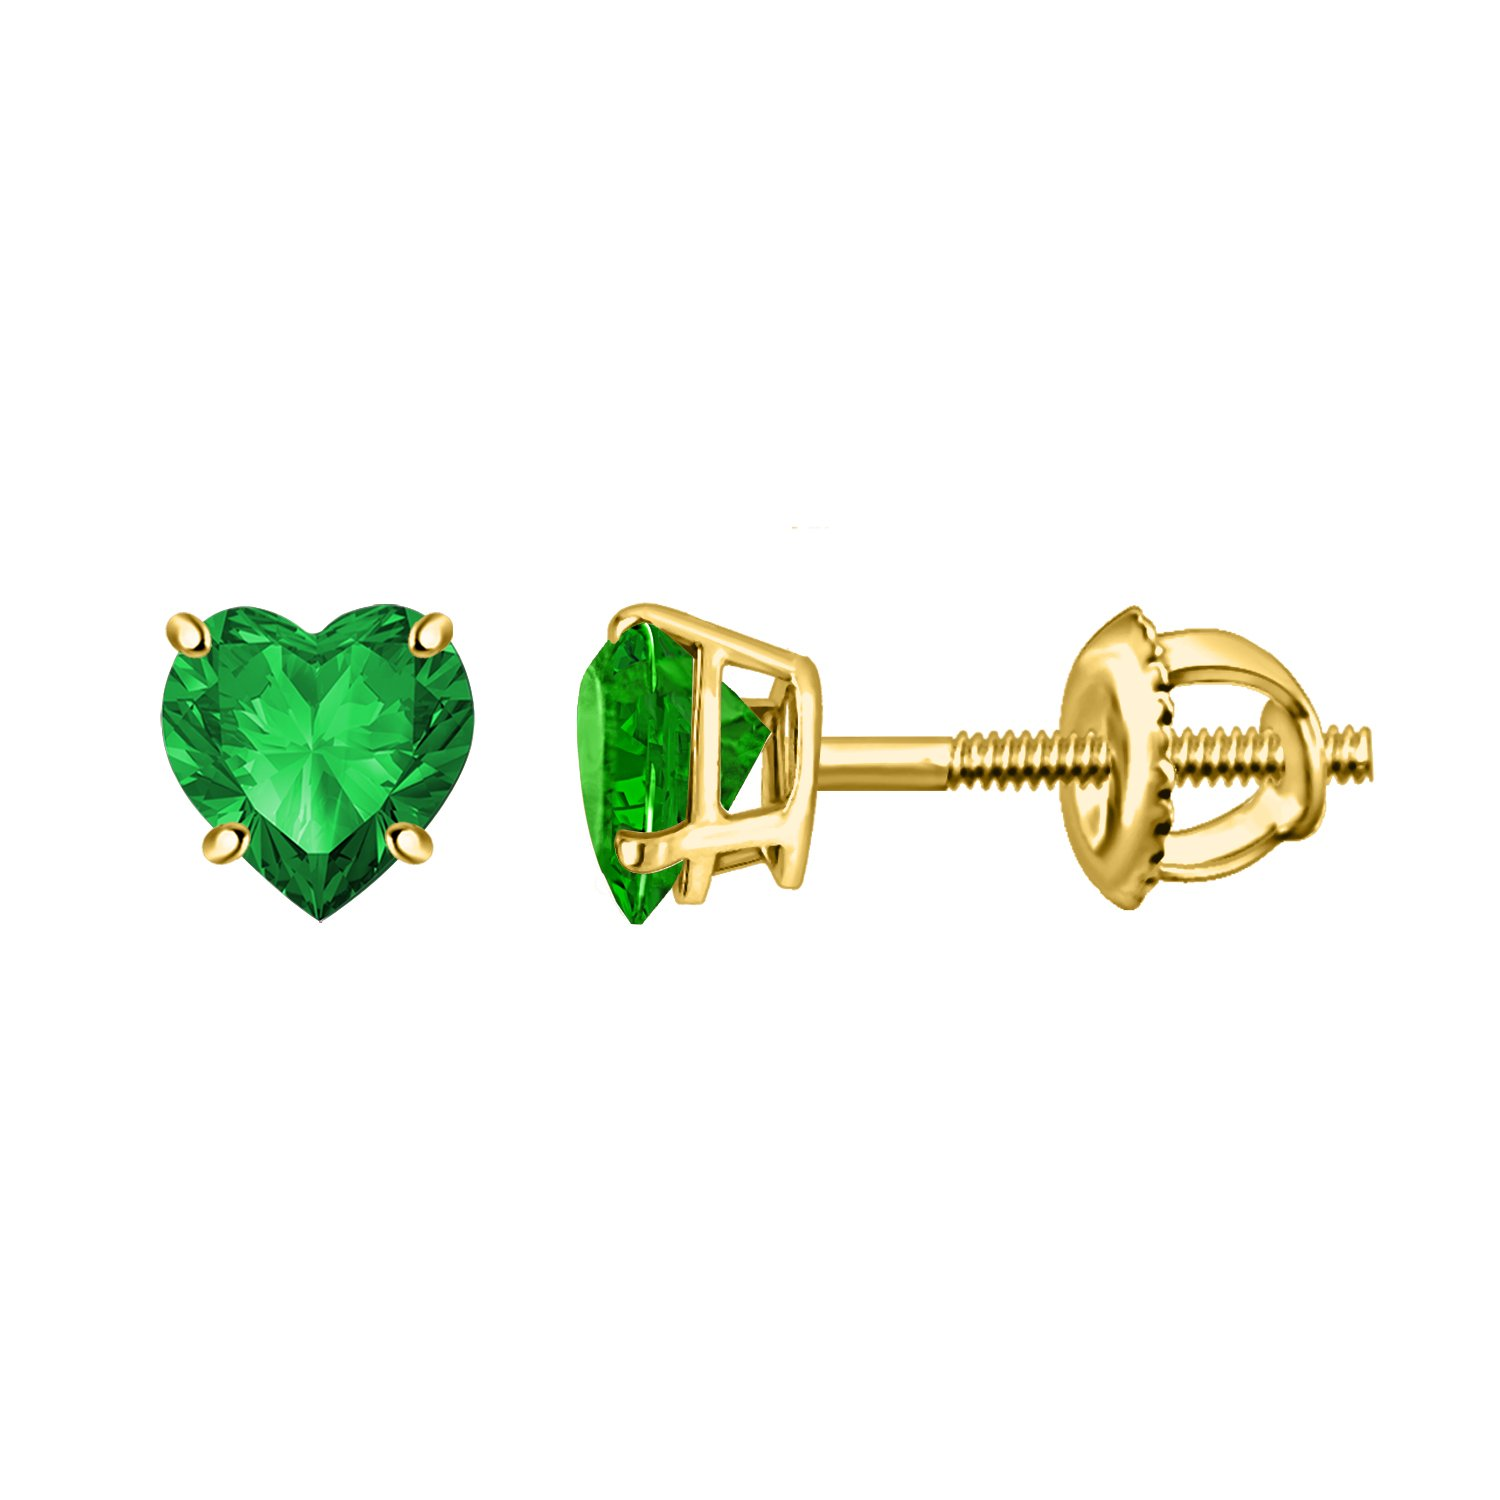 0.94CT Green Emerald Yellow Gold Heart Shape Solitaire Screw back Earrings In 925 Pure Silver